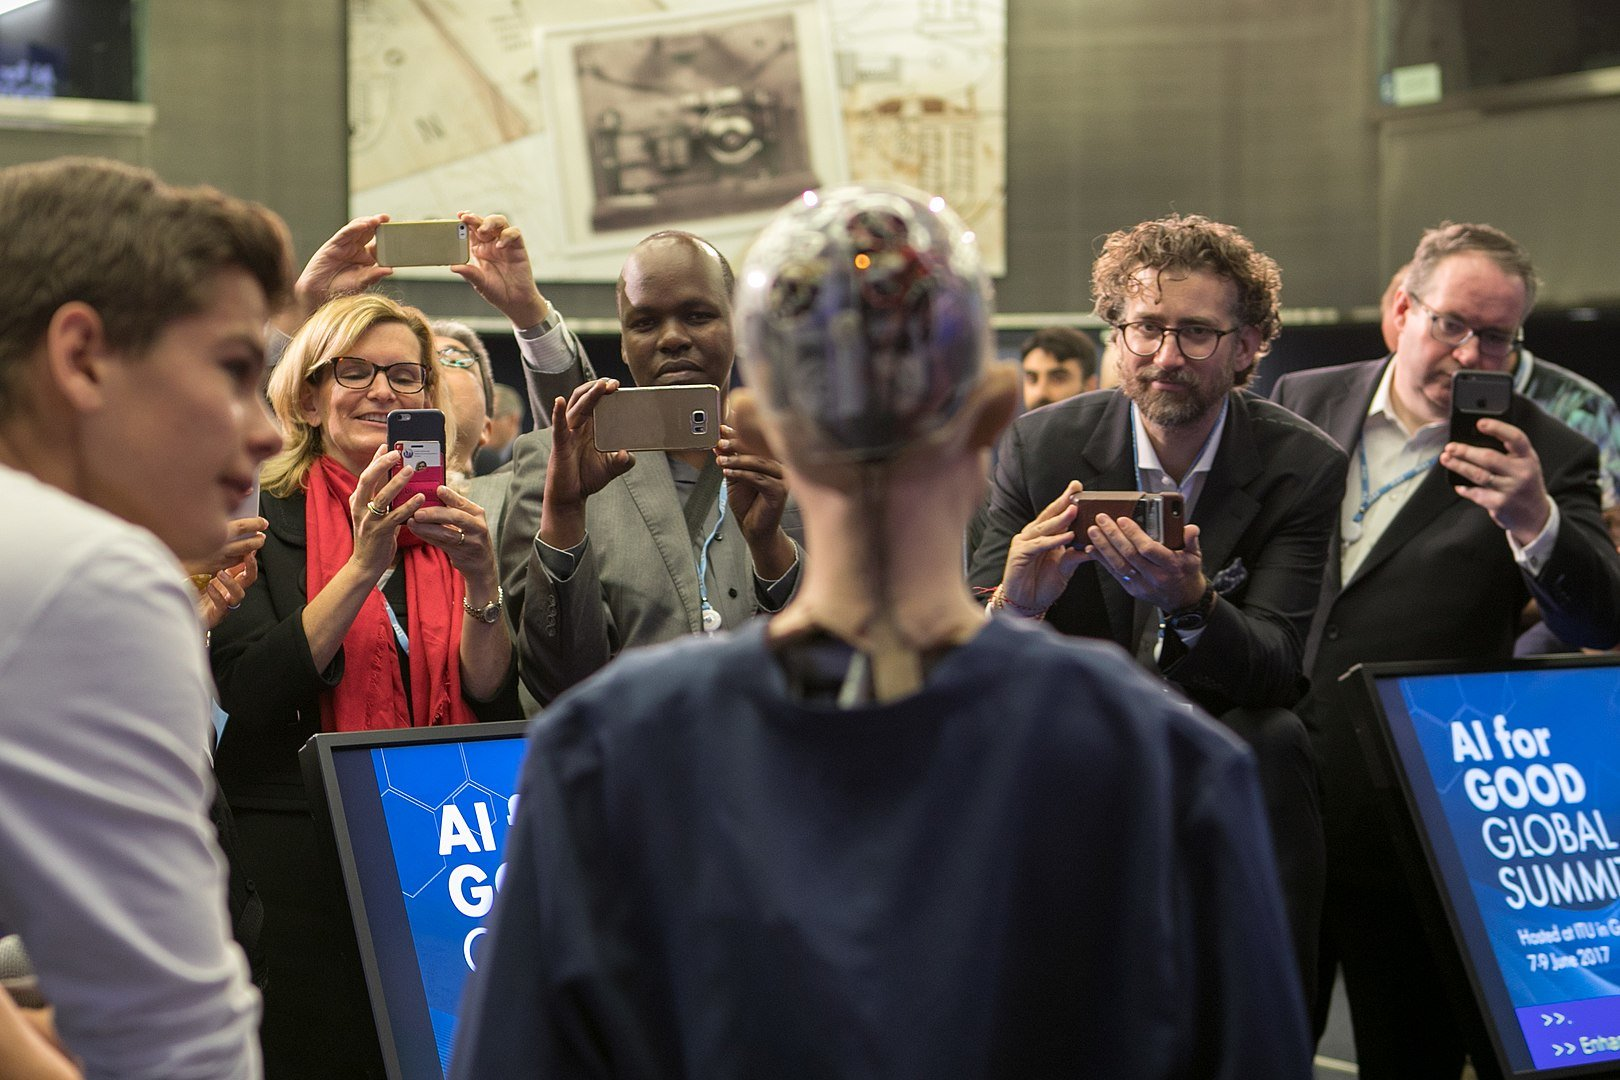 Europe publishes more AI research papers than the US or China but turning research into a business remains a challenge. Image credit - ITU Pictures, licensed under CC BY 2.0